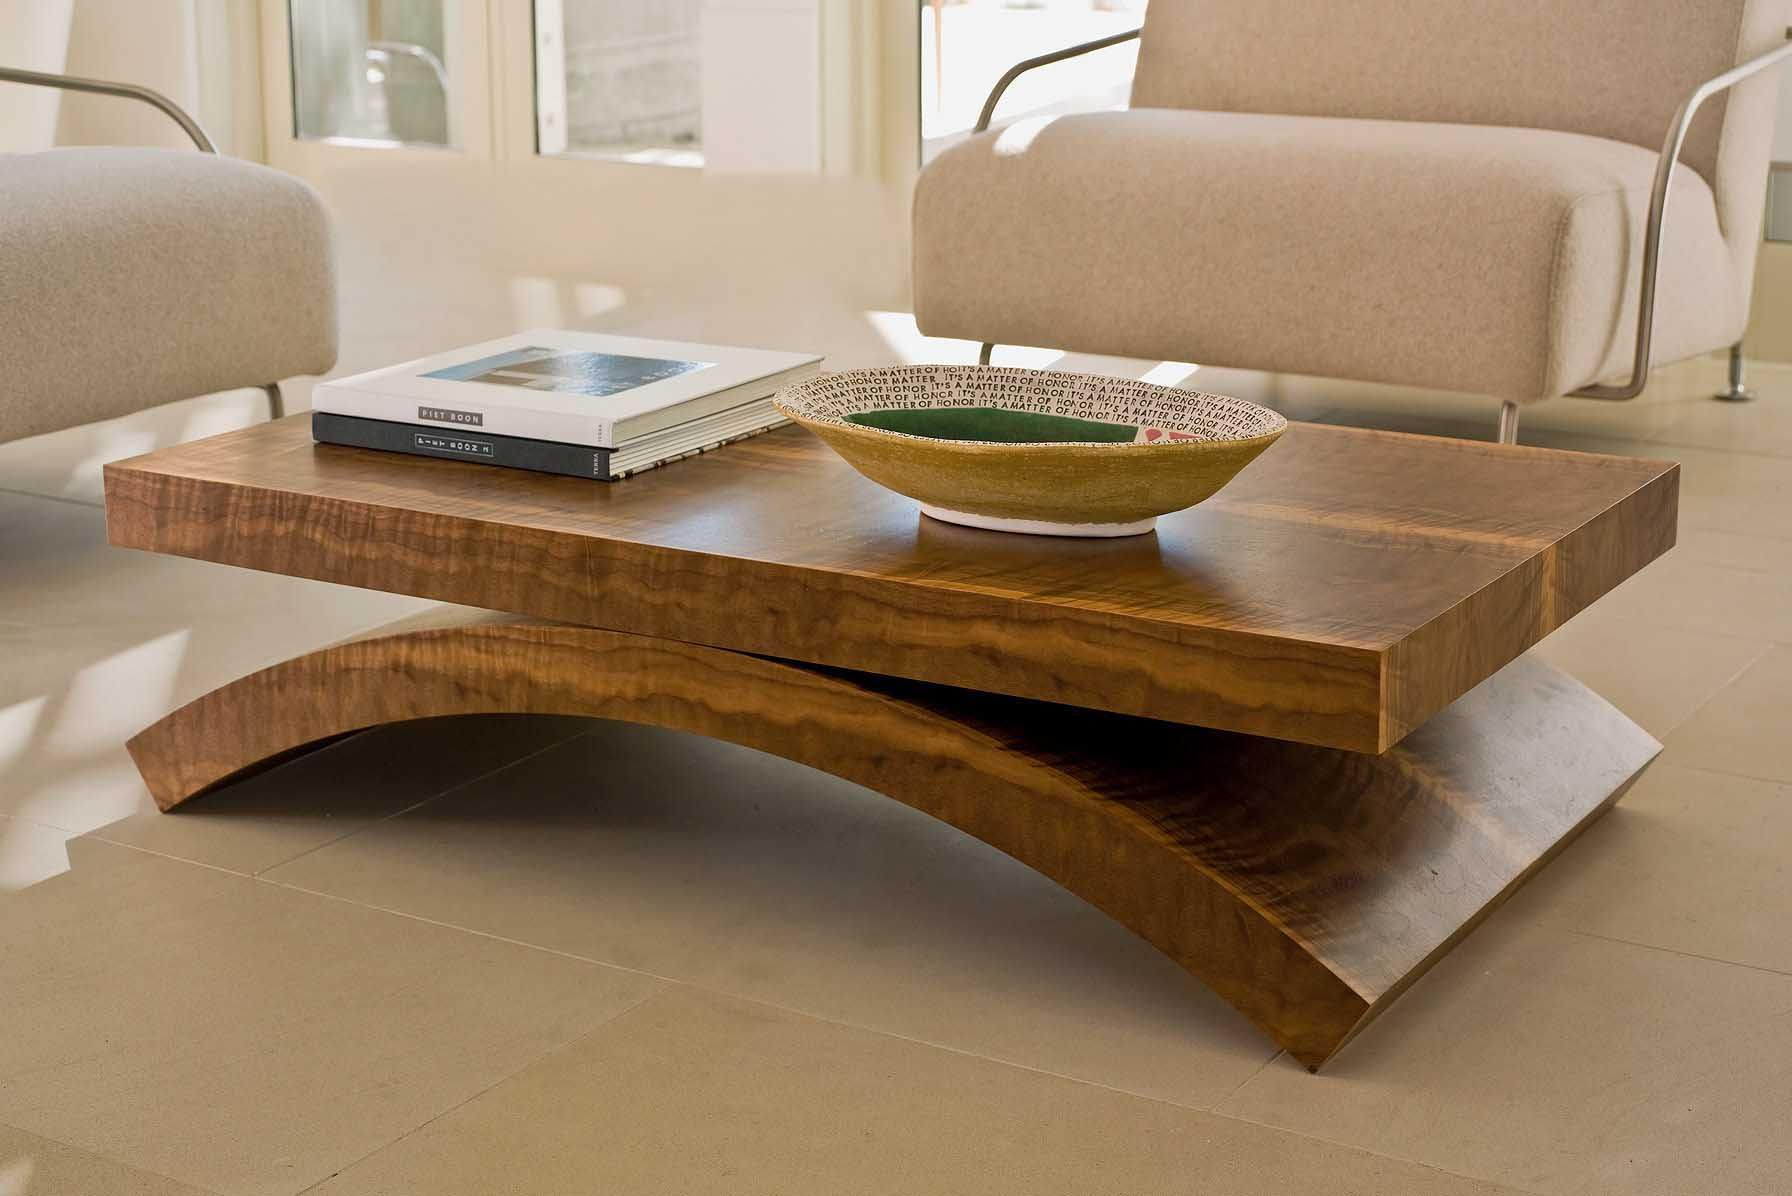 Modern Wooden Coffee Table Coffee Table Design Ideas Wooden Coffee Table Designs Coffee Table Furniture Wood Coffee Table Design [ 1196 x 1792 Pixel ]